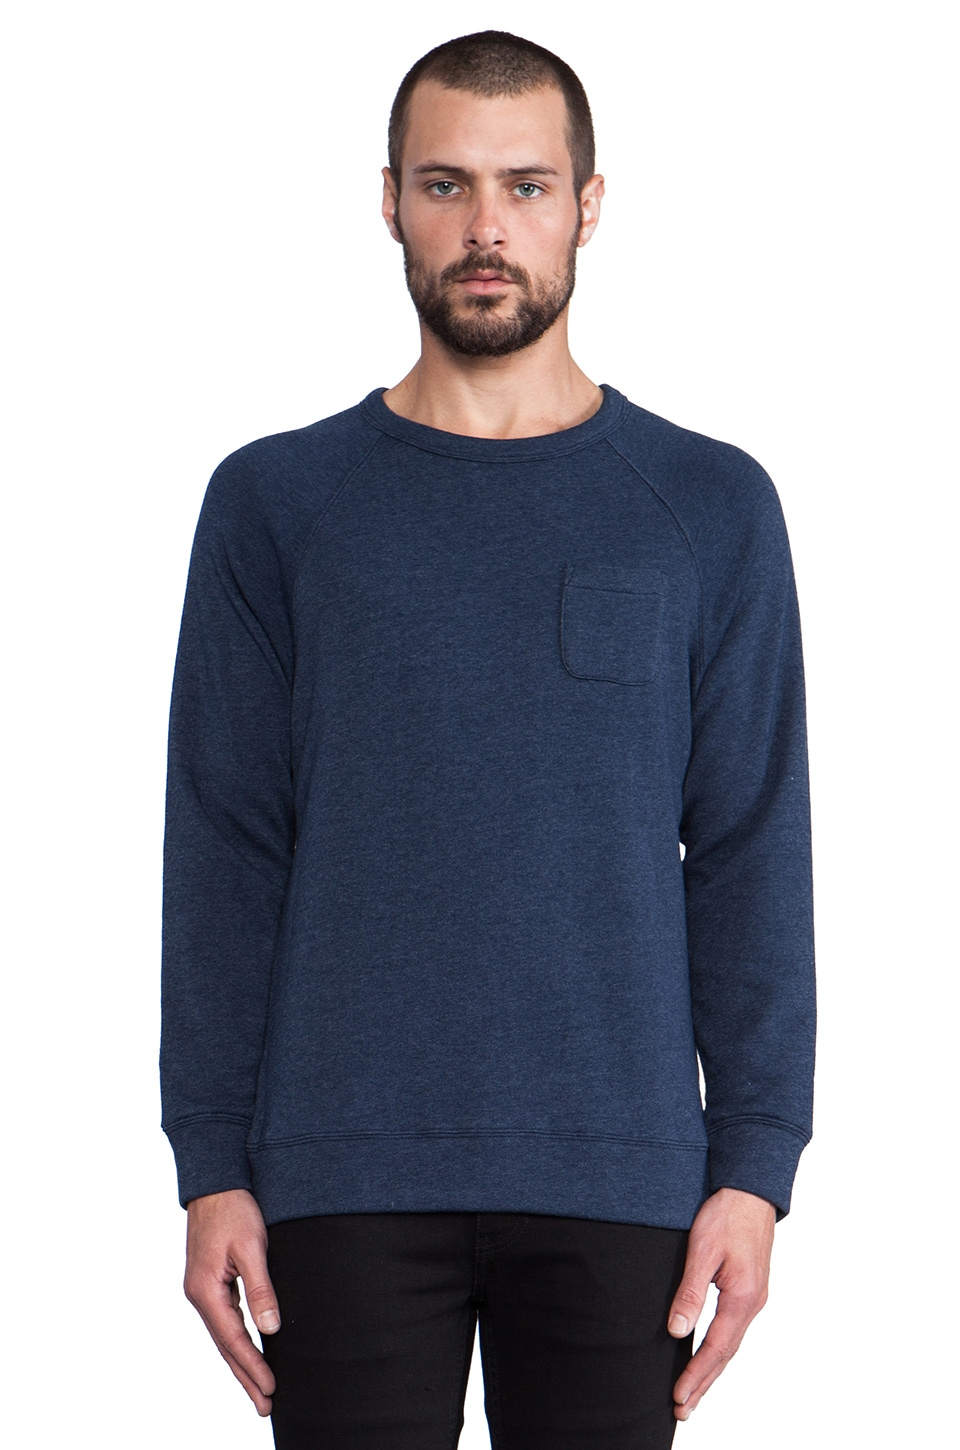 Obey Lofty Creature Comforts Crew Pullover Sweatshirt in Dark Navy